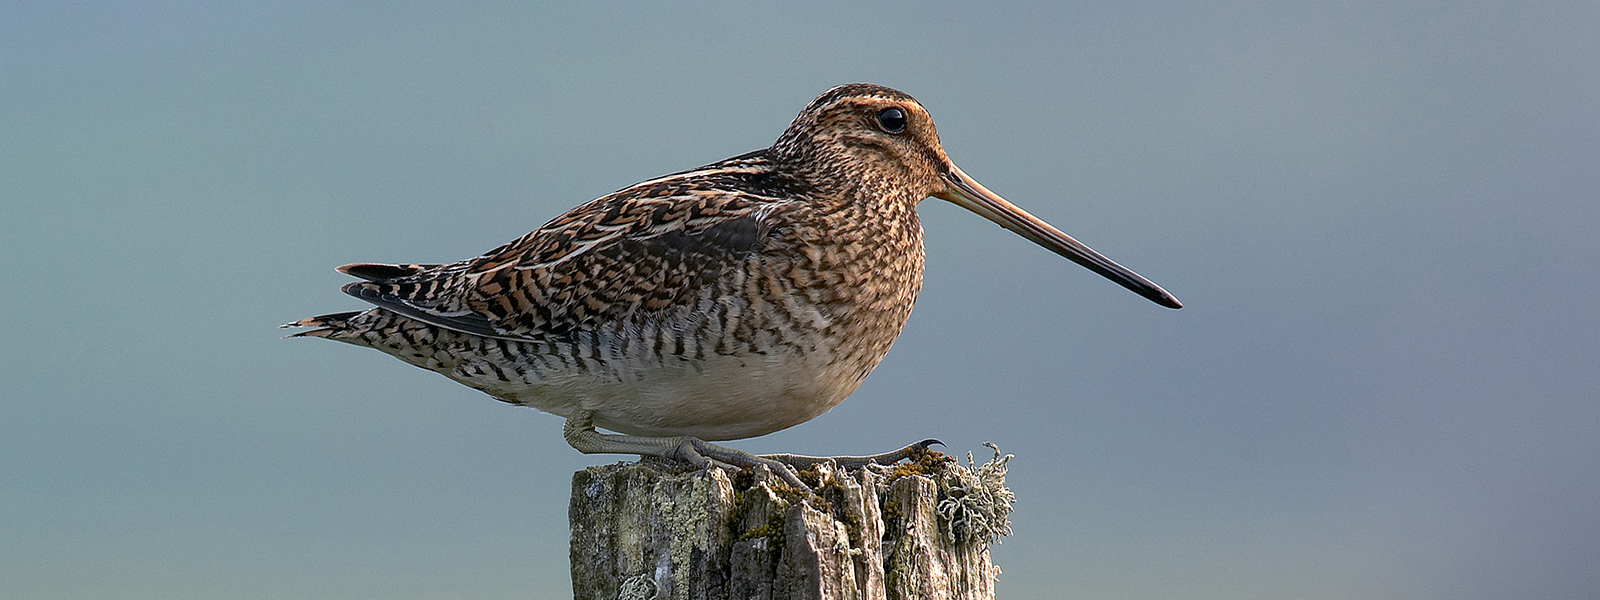 Snipe on Fence Post - Kenneth Drysdale